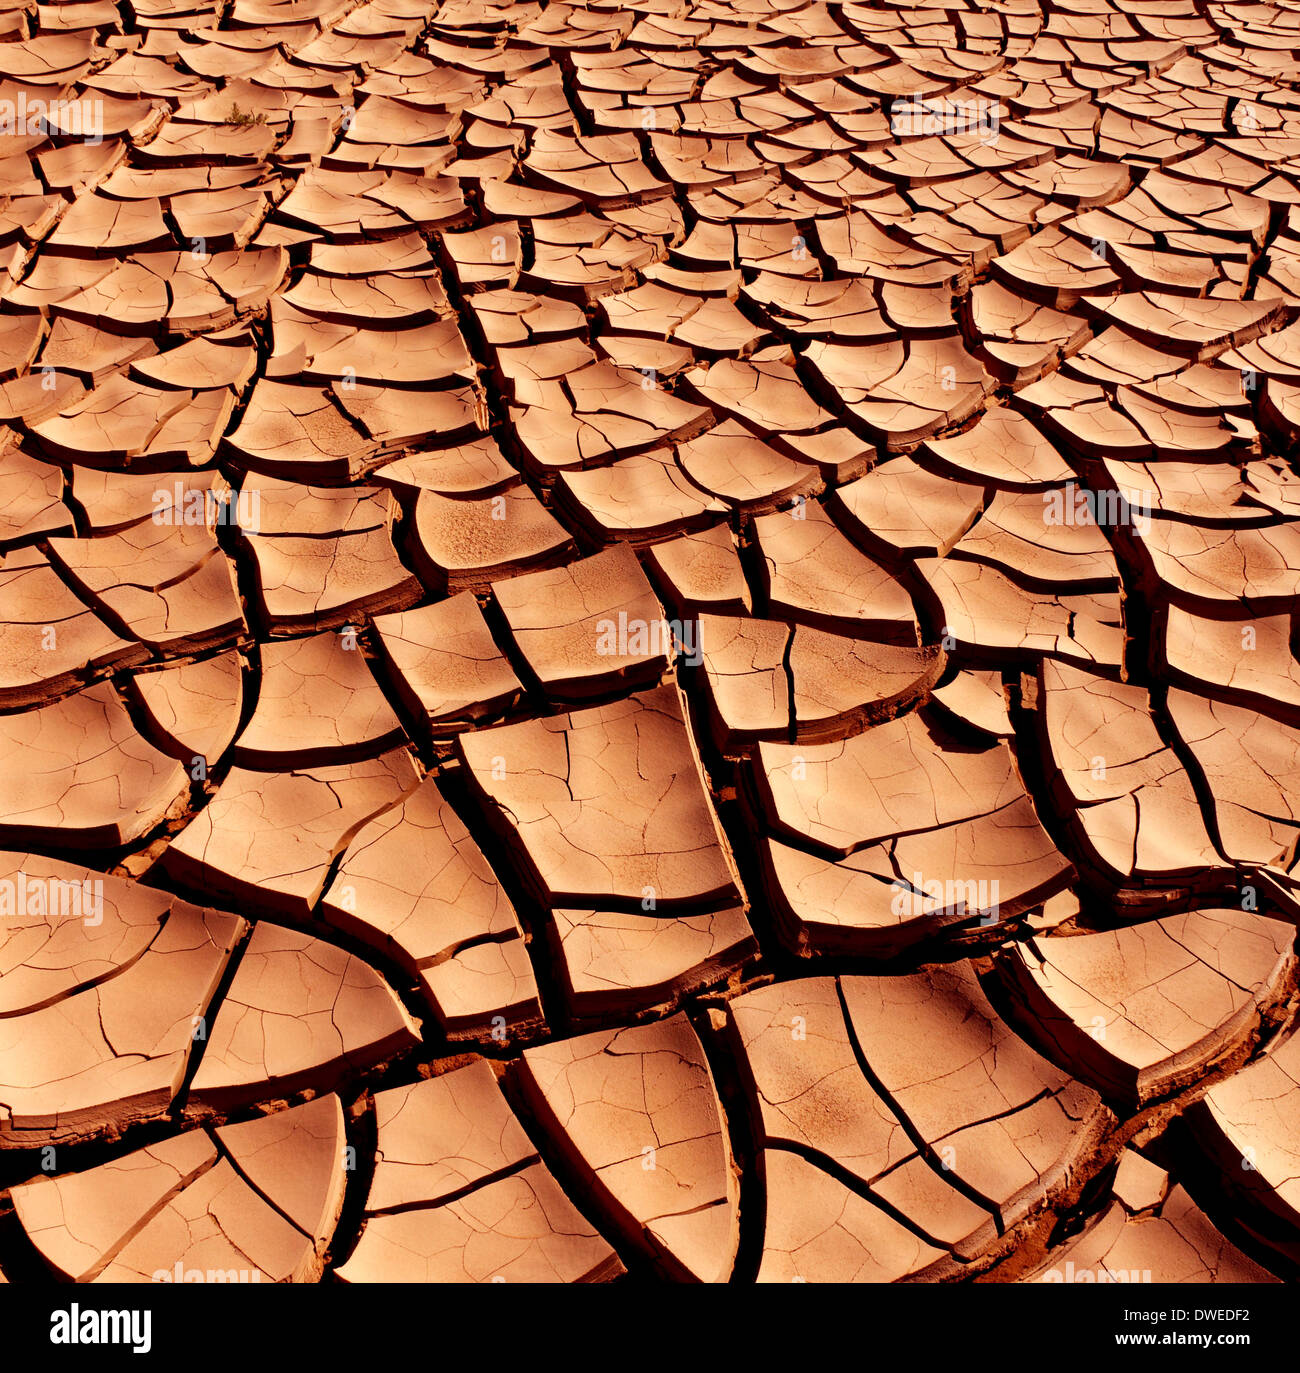 Dry and cracked earth - Stock Image